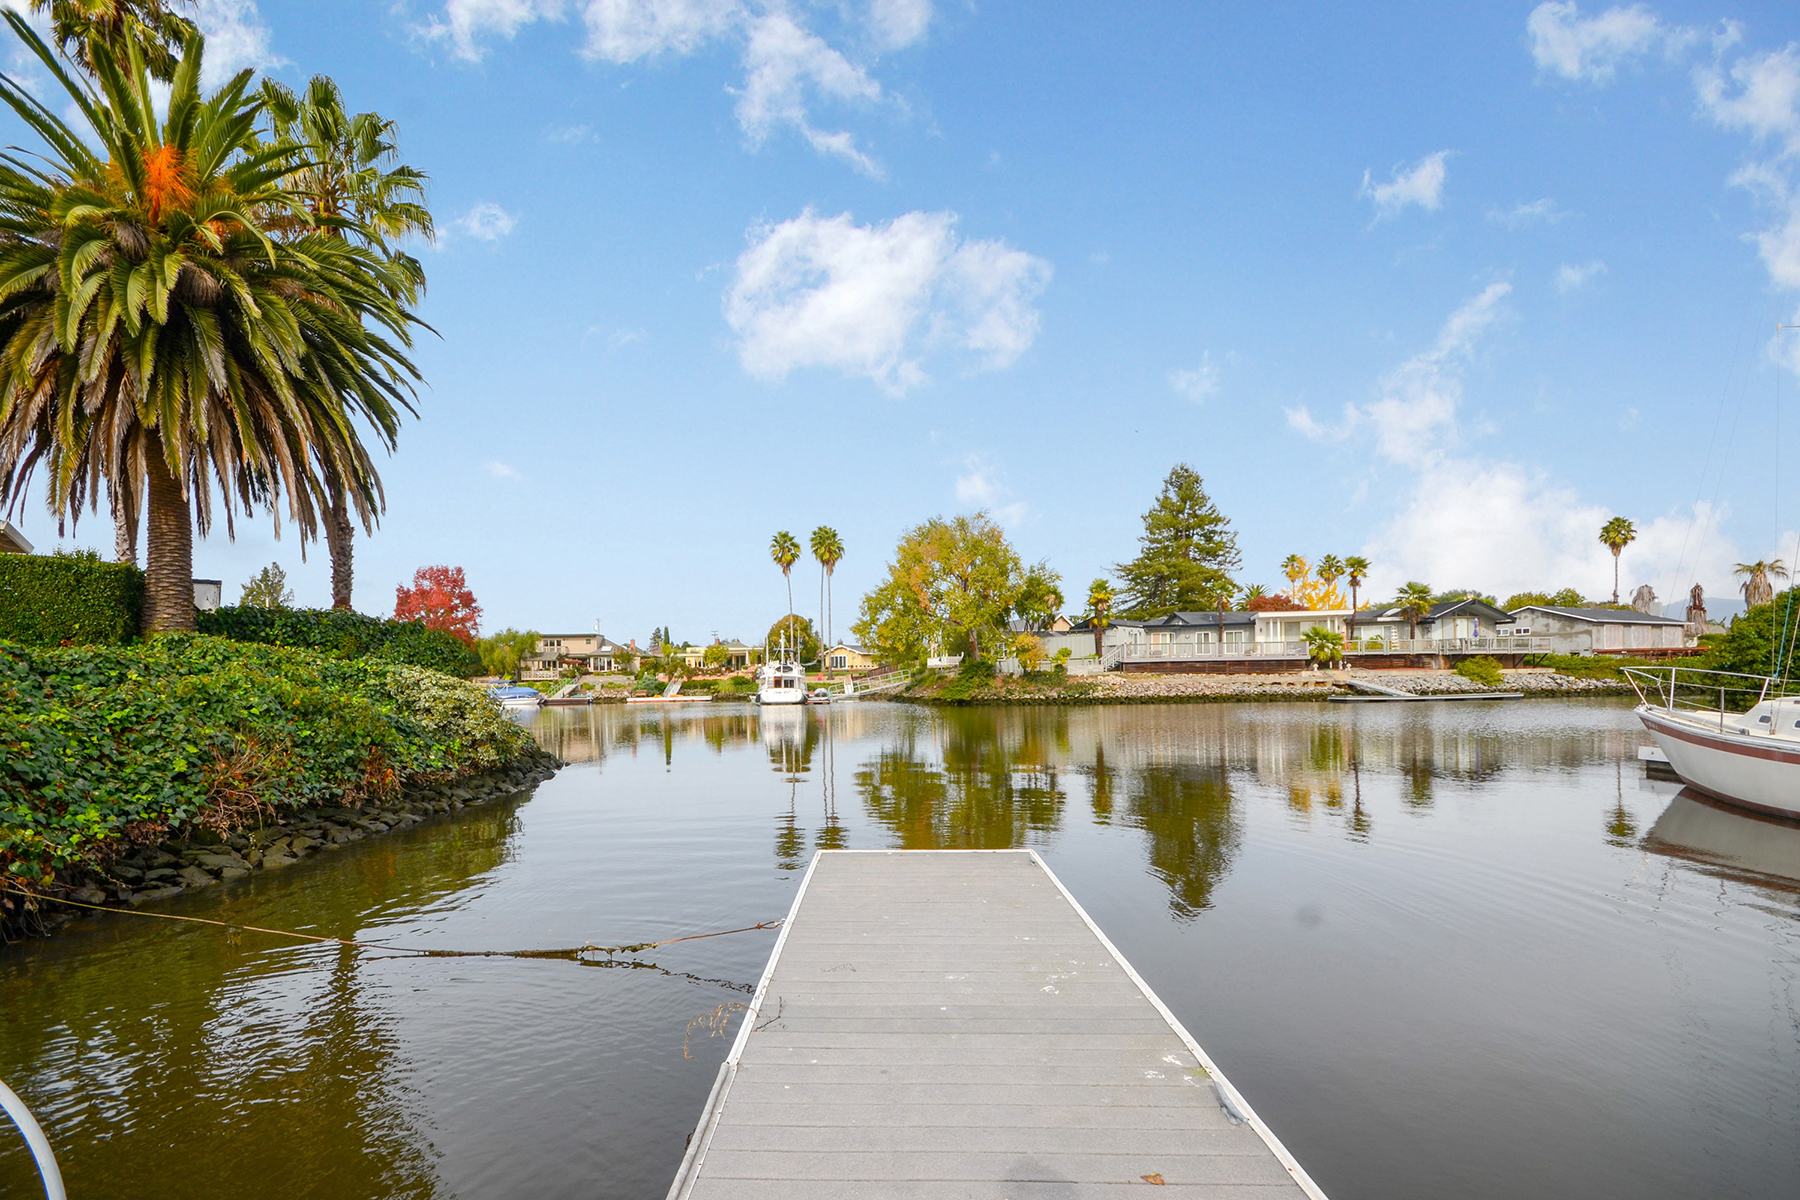 Single Family Home for Sale at A Captivating Riverfront Home 770 Kearney Way Napa, California 94559 United States